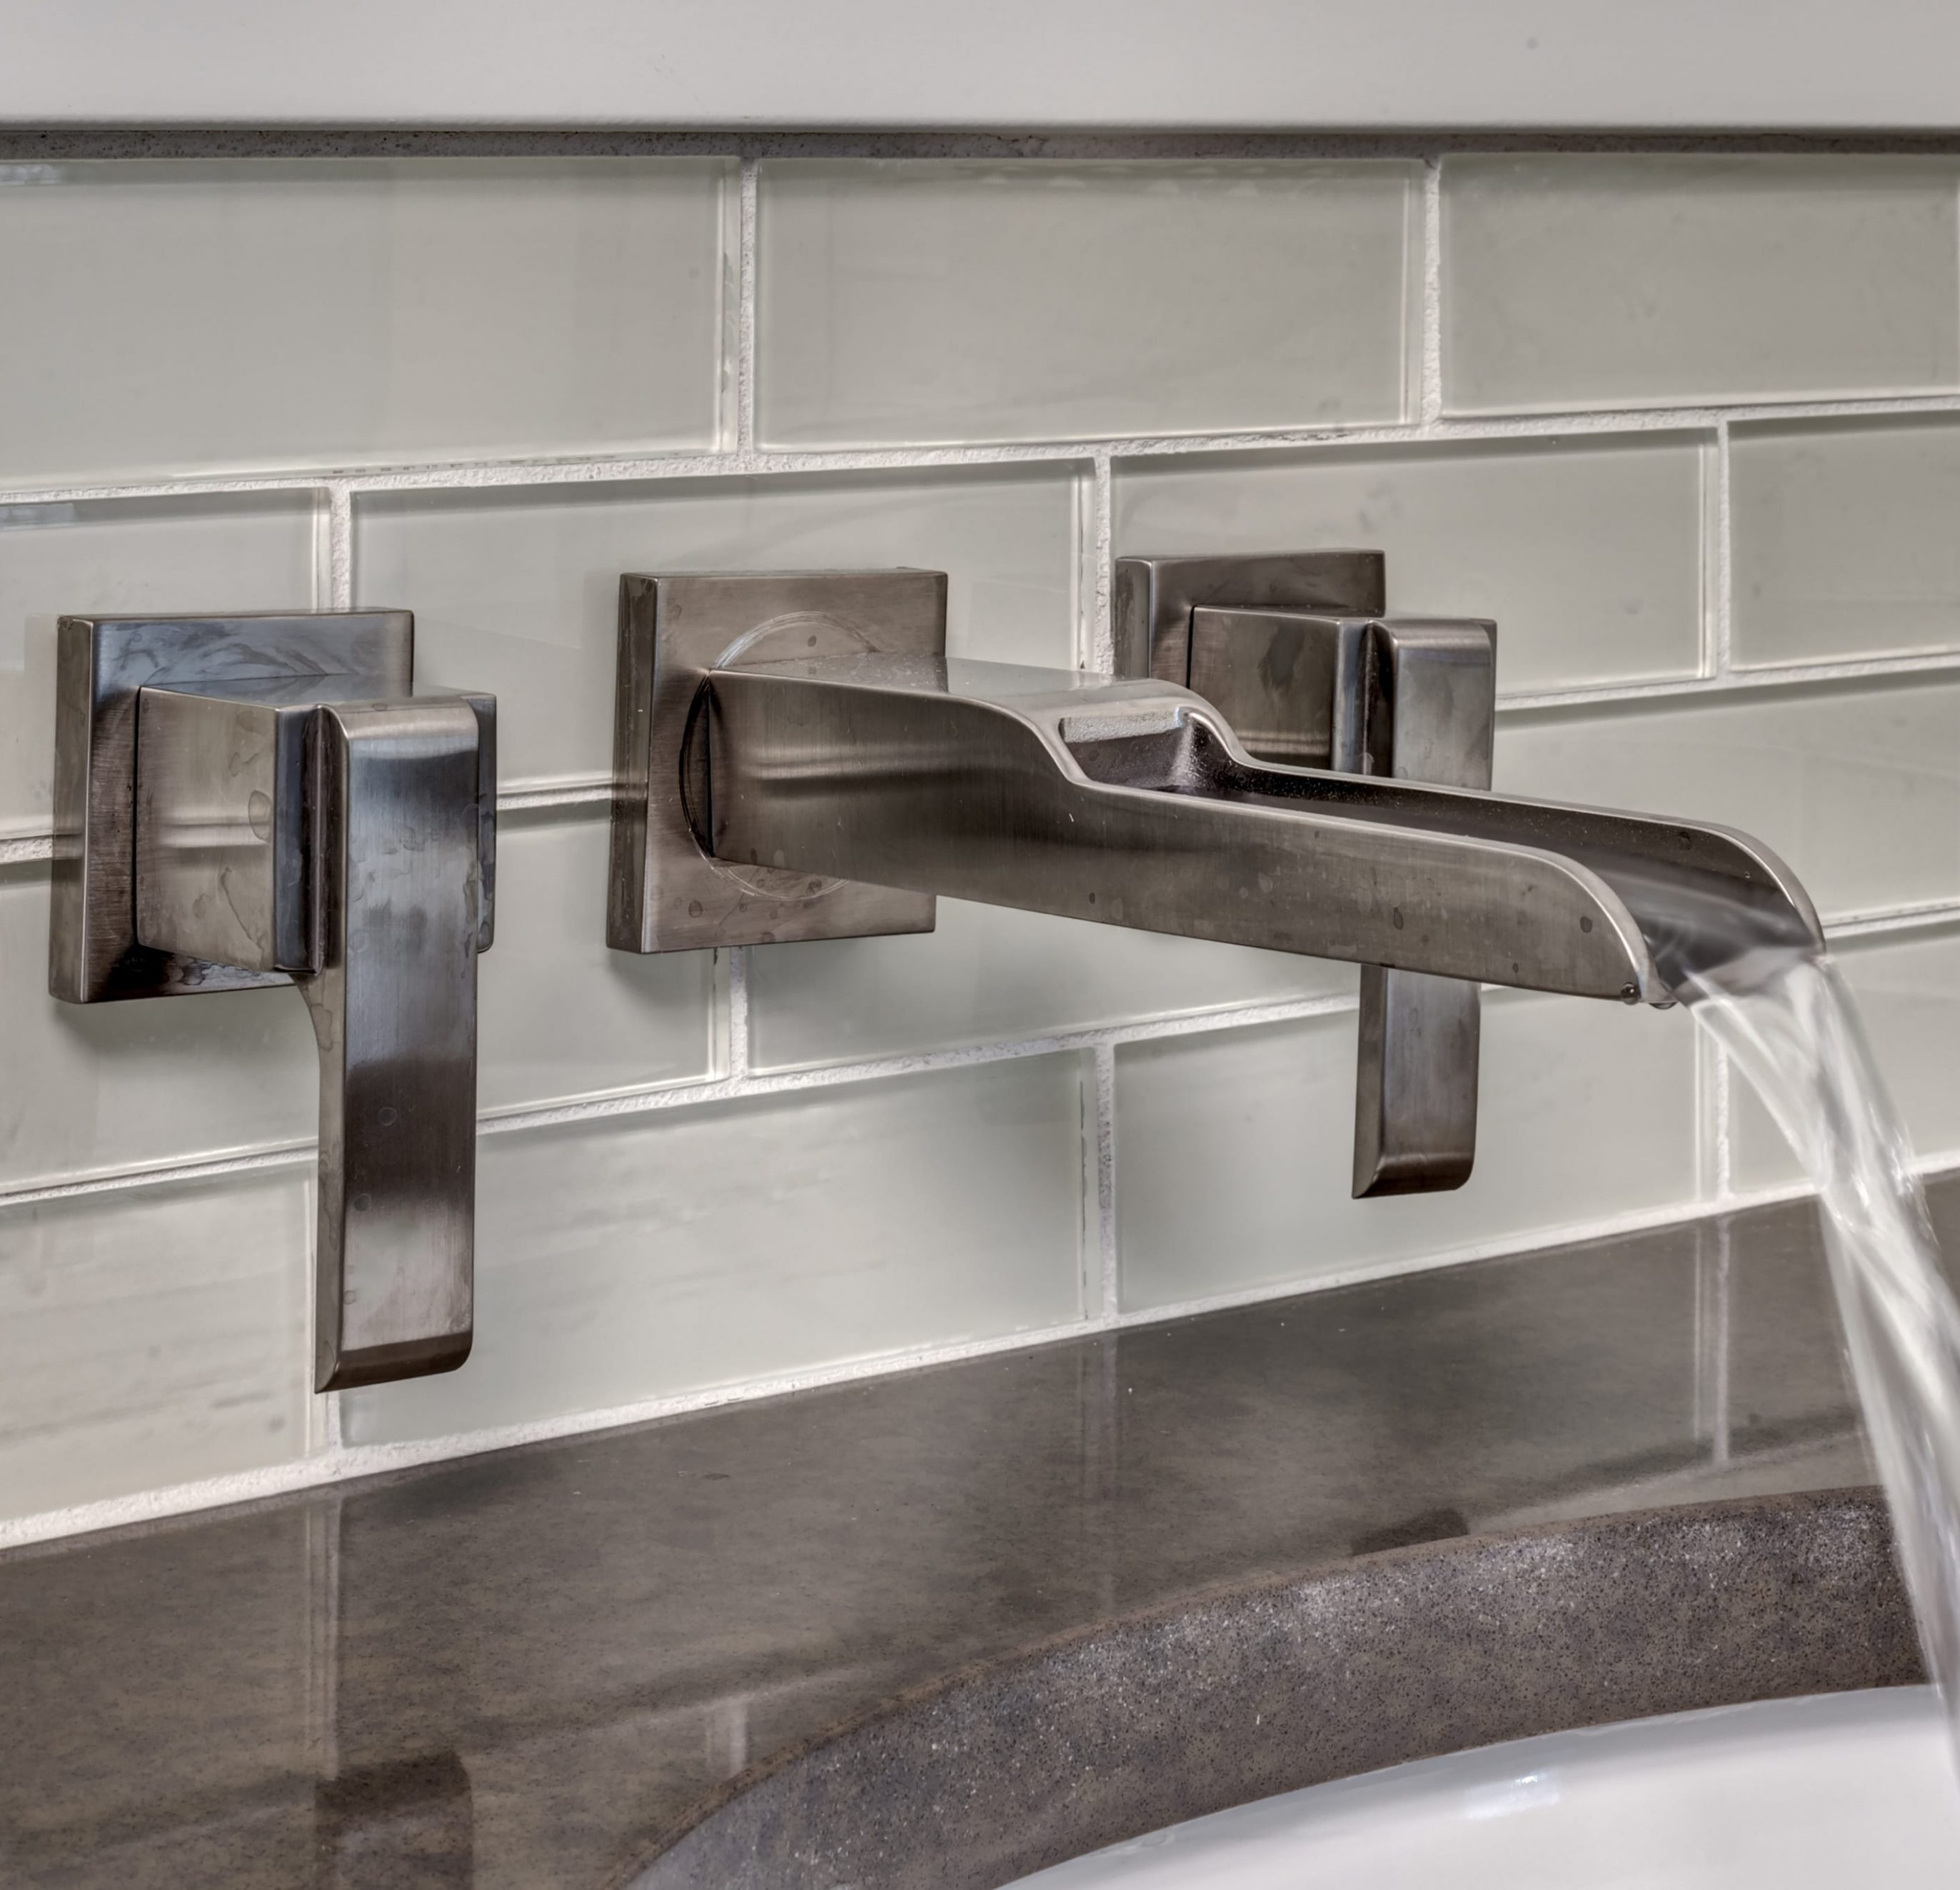 Water Empties from Quality Faucet into Bathroom Sink